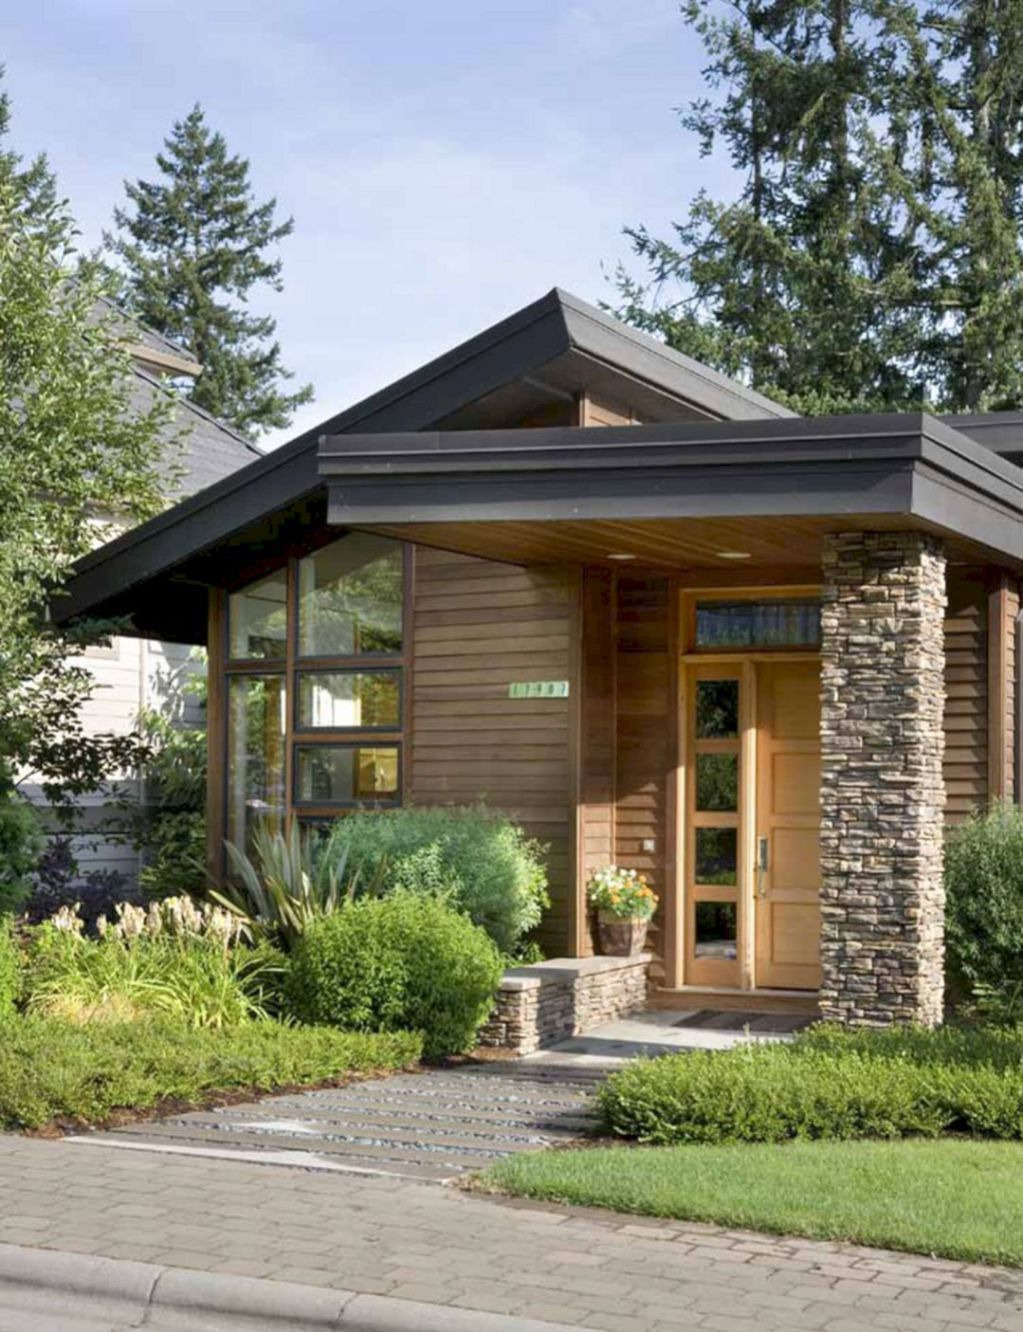 Ultra Contemporary Small House Plans Awesome top 10 Modern Tiny House Design and Small Homes Collections